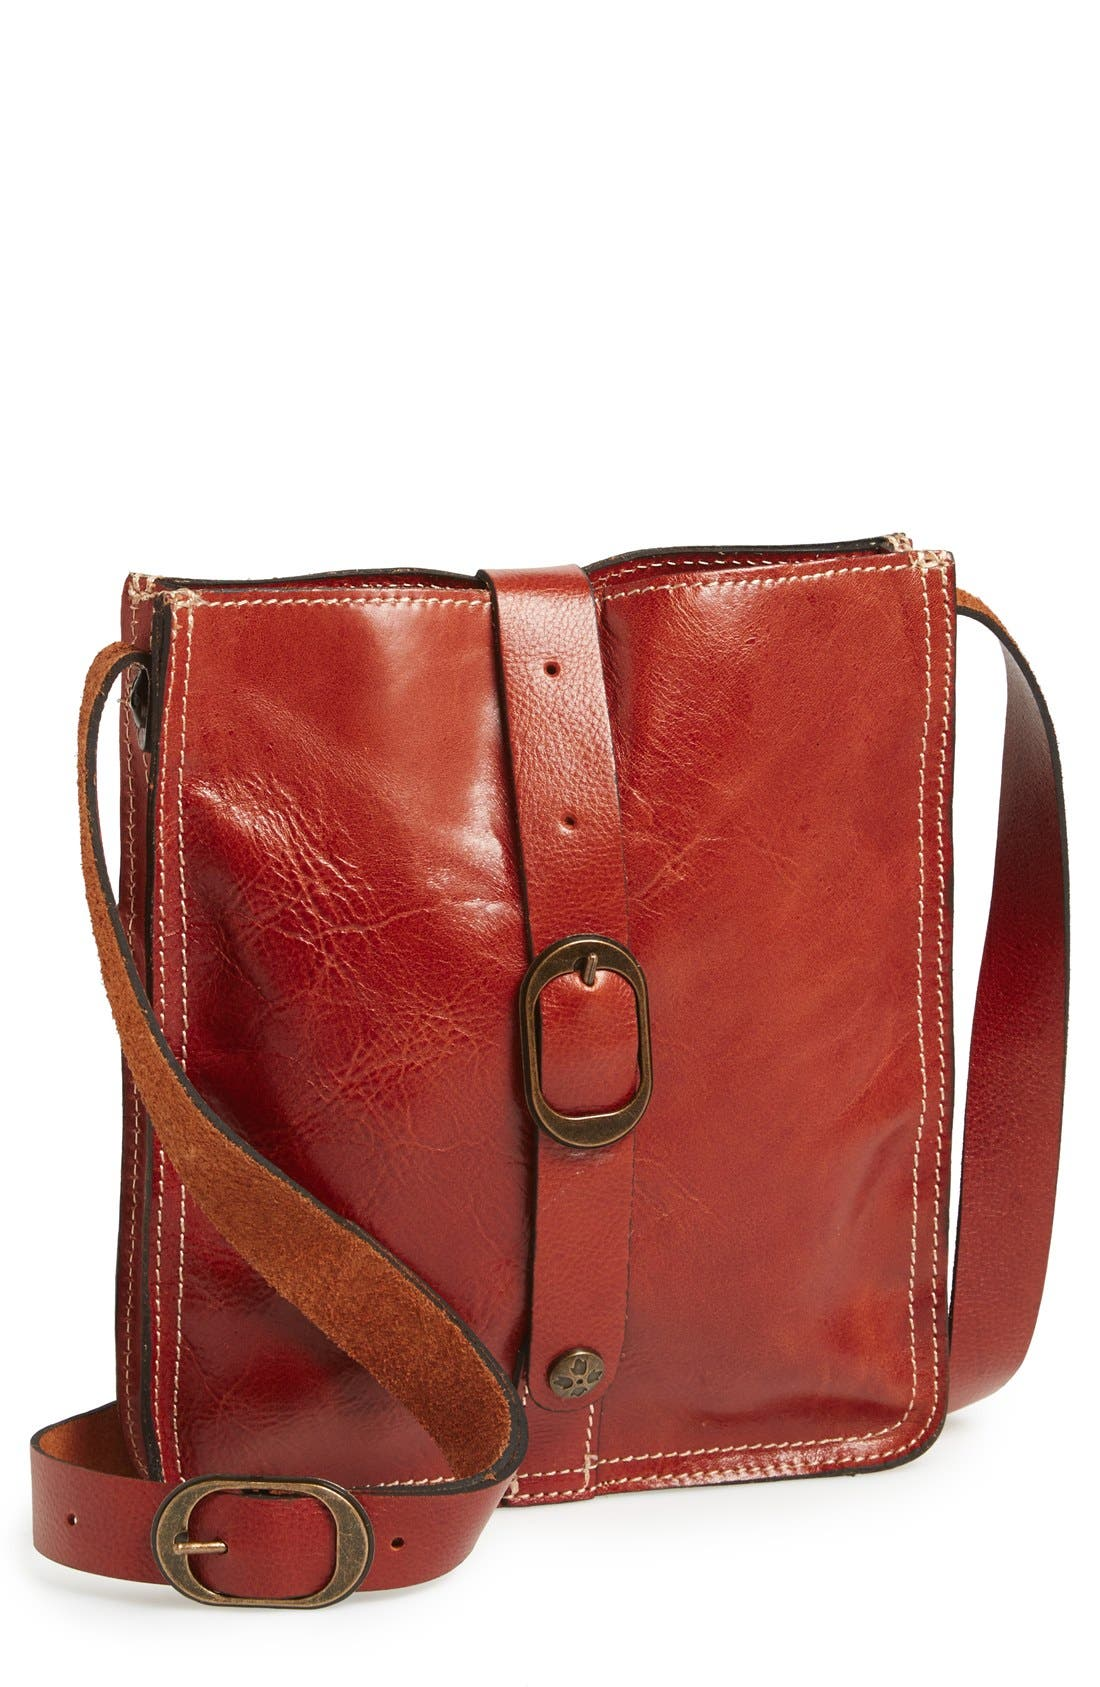 Main Image - Patricia Nash 'Venezia' Crossbody Bag